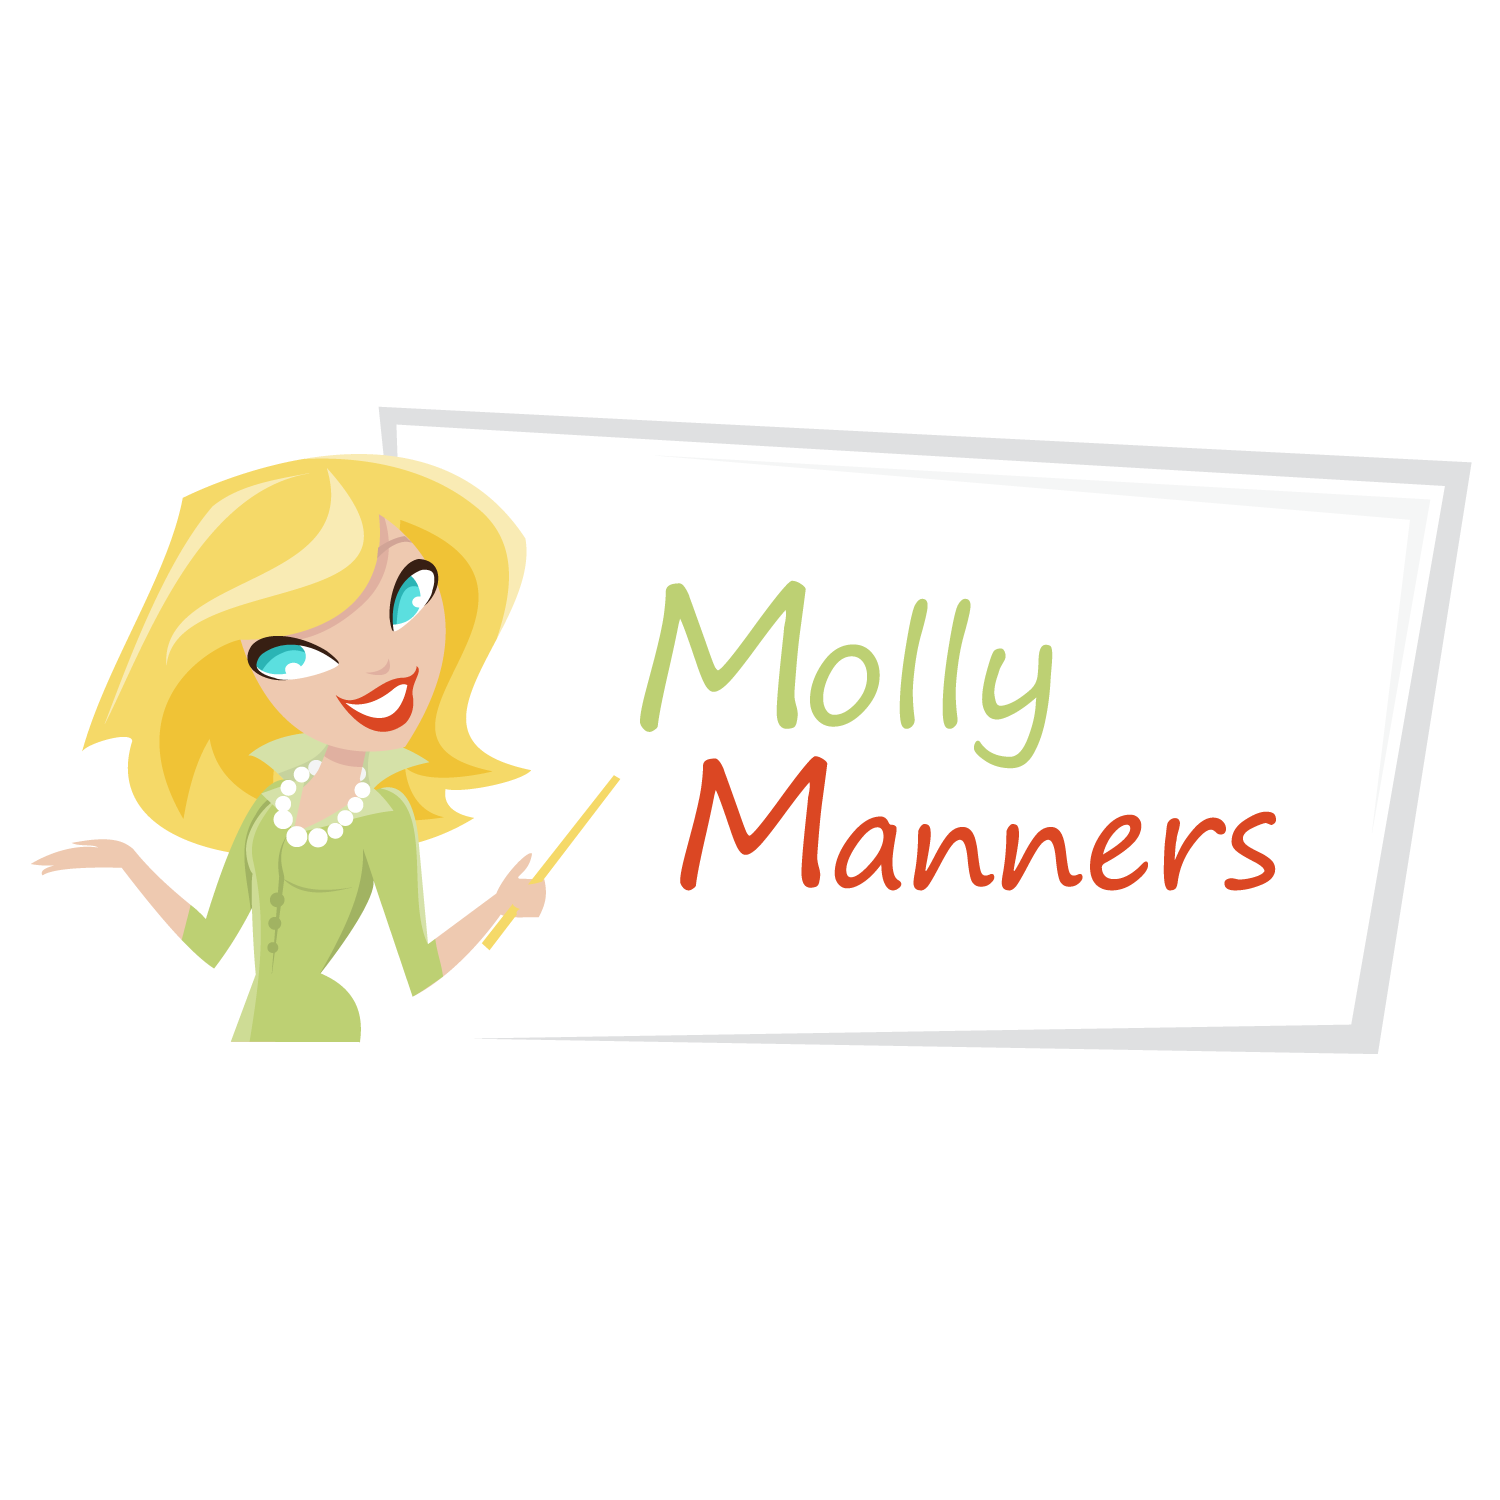 molly_manners_large